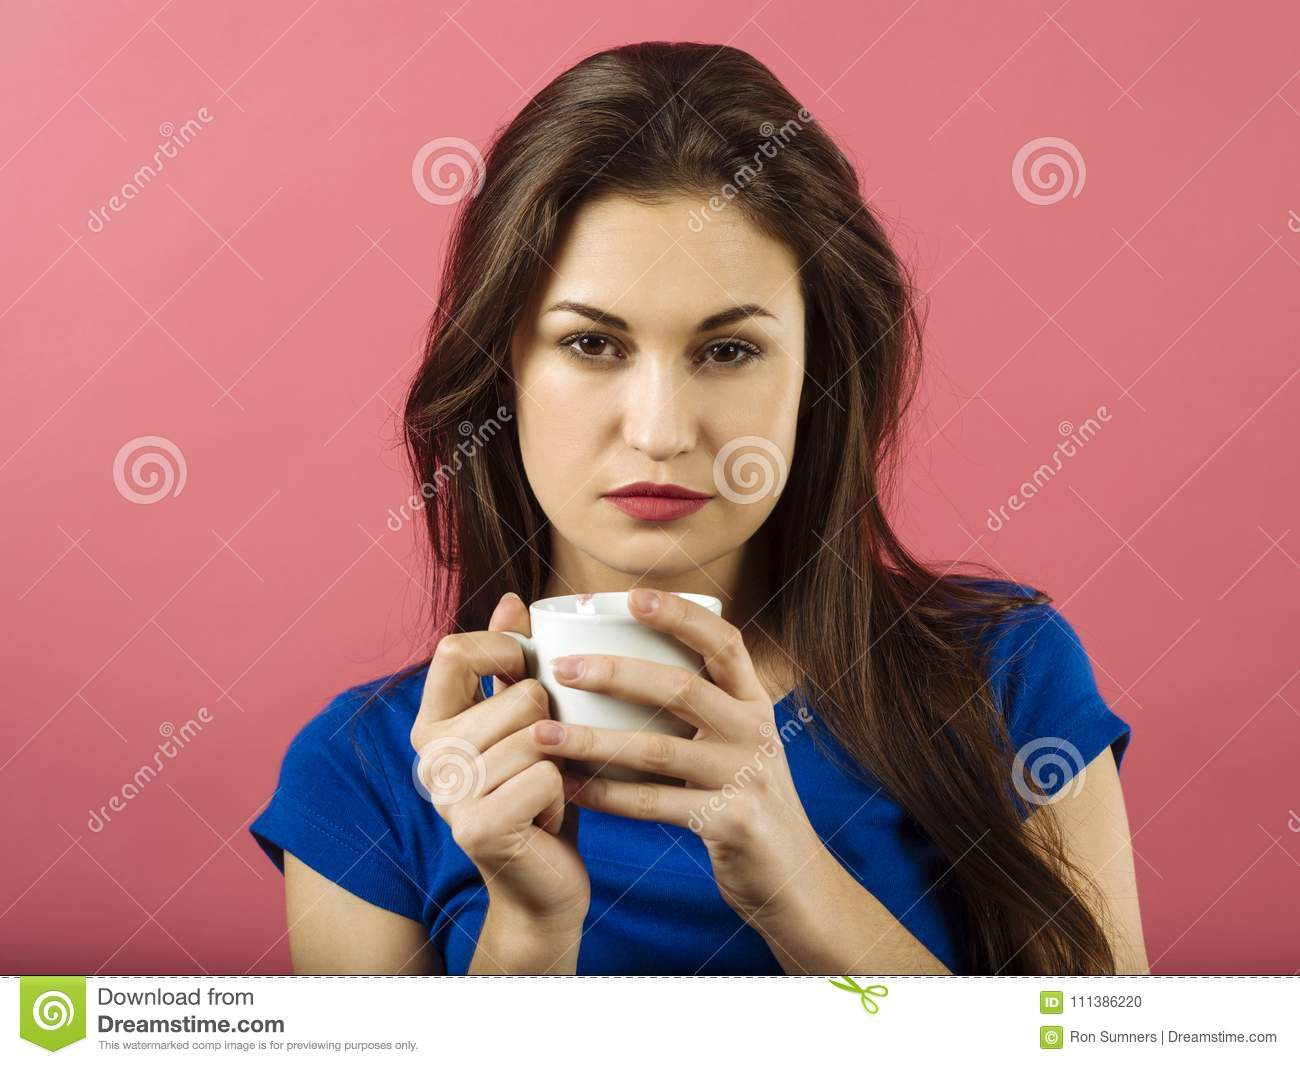 Serious woman drinking coffee over pink background